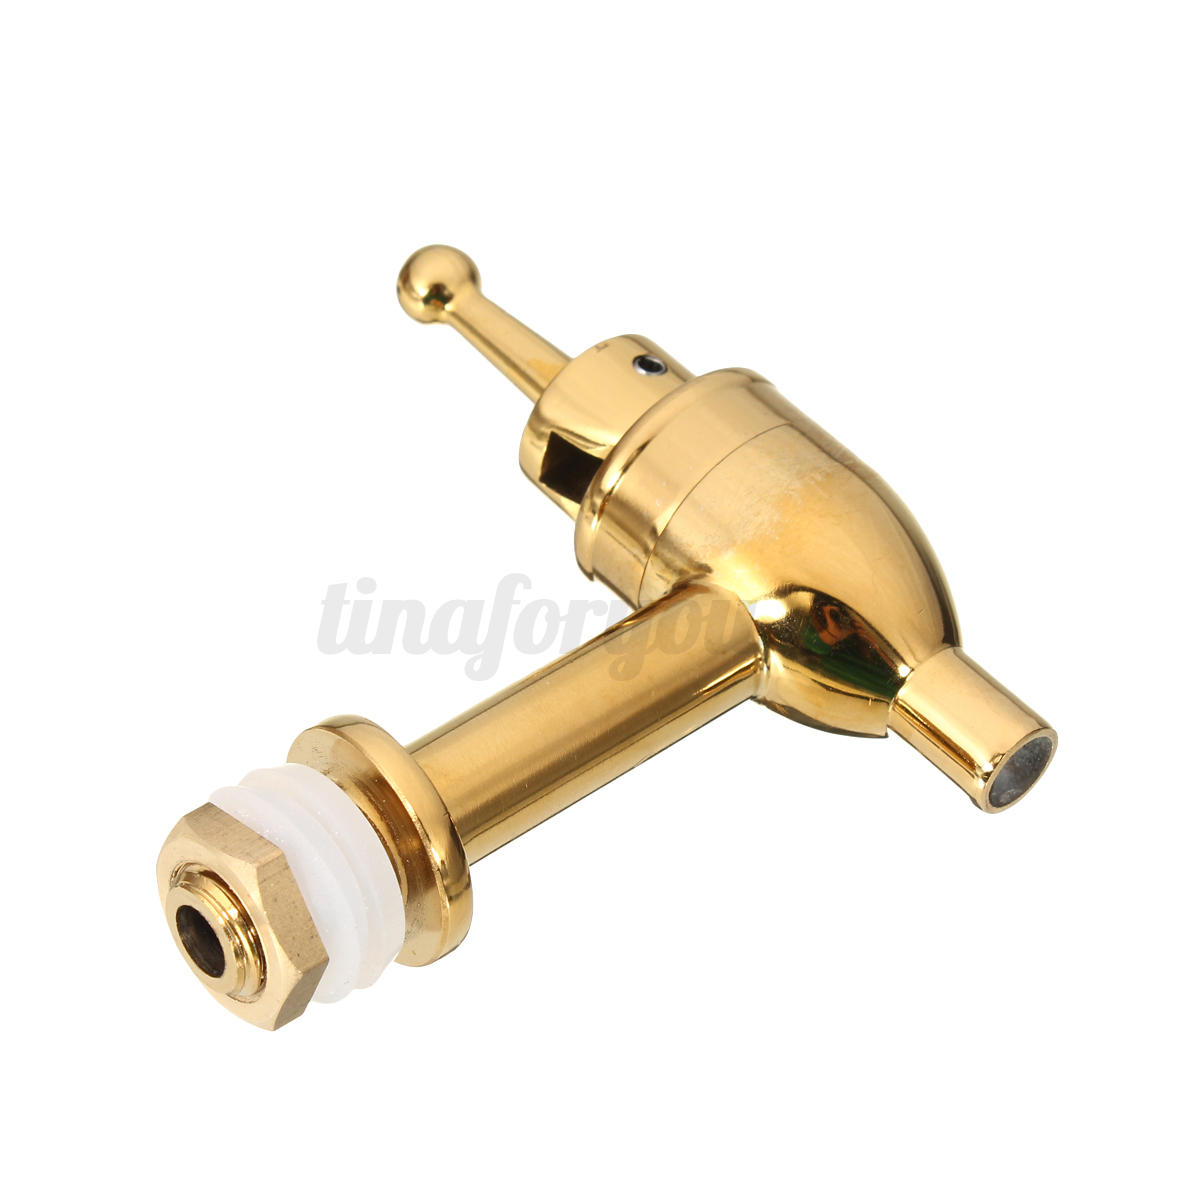 Brass Replacement Spigot Faucet For Wine Barrel Beverage